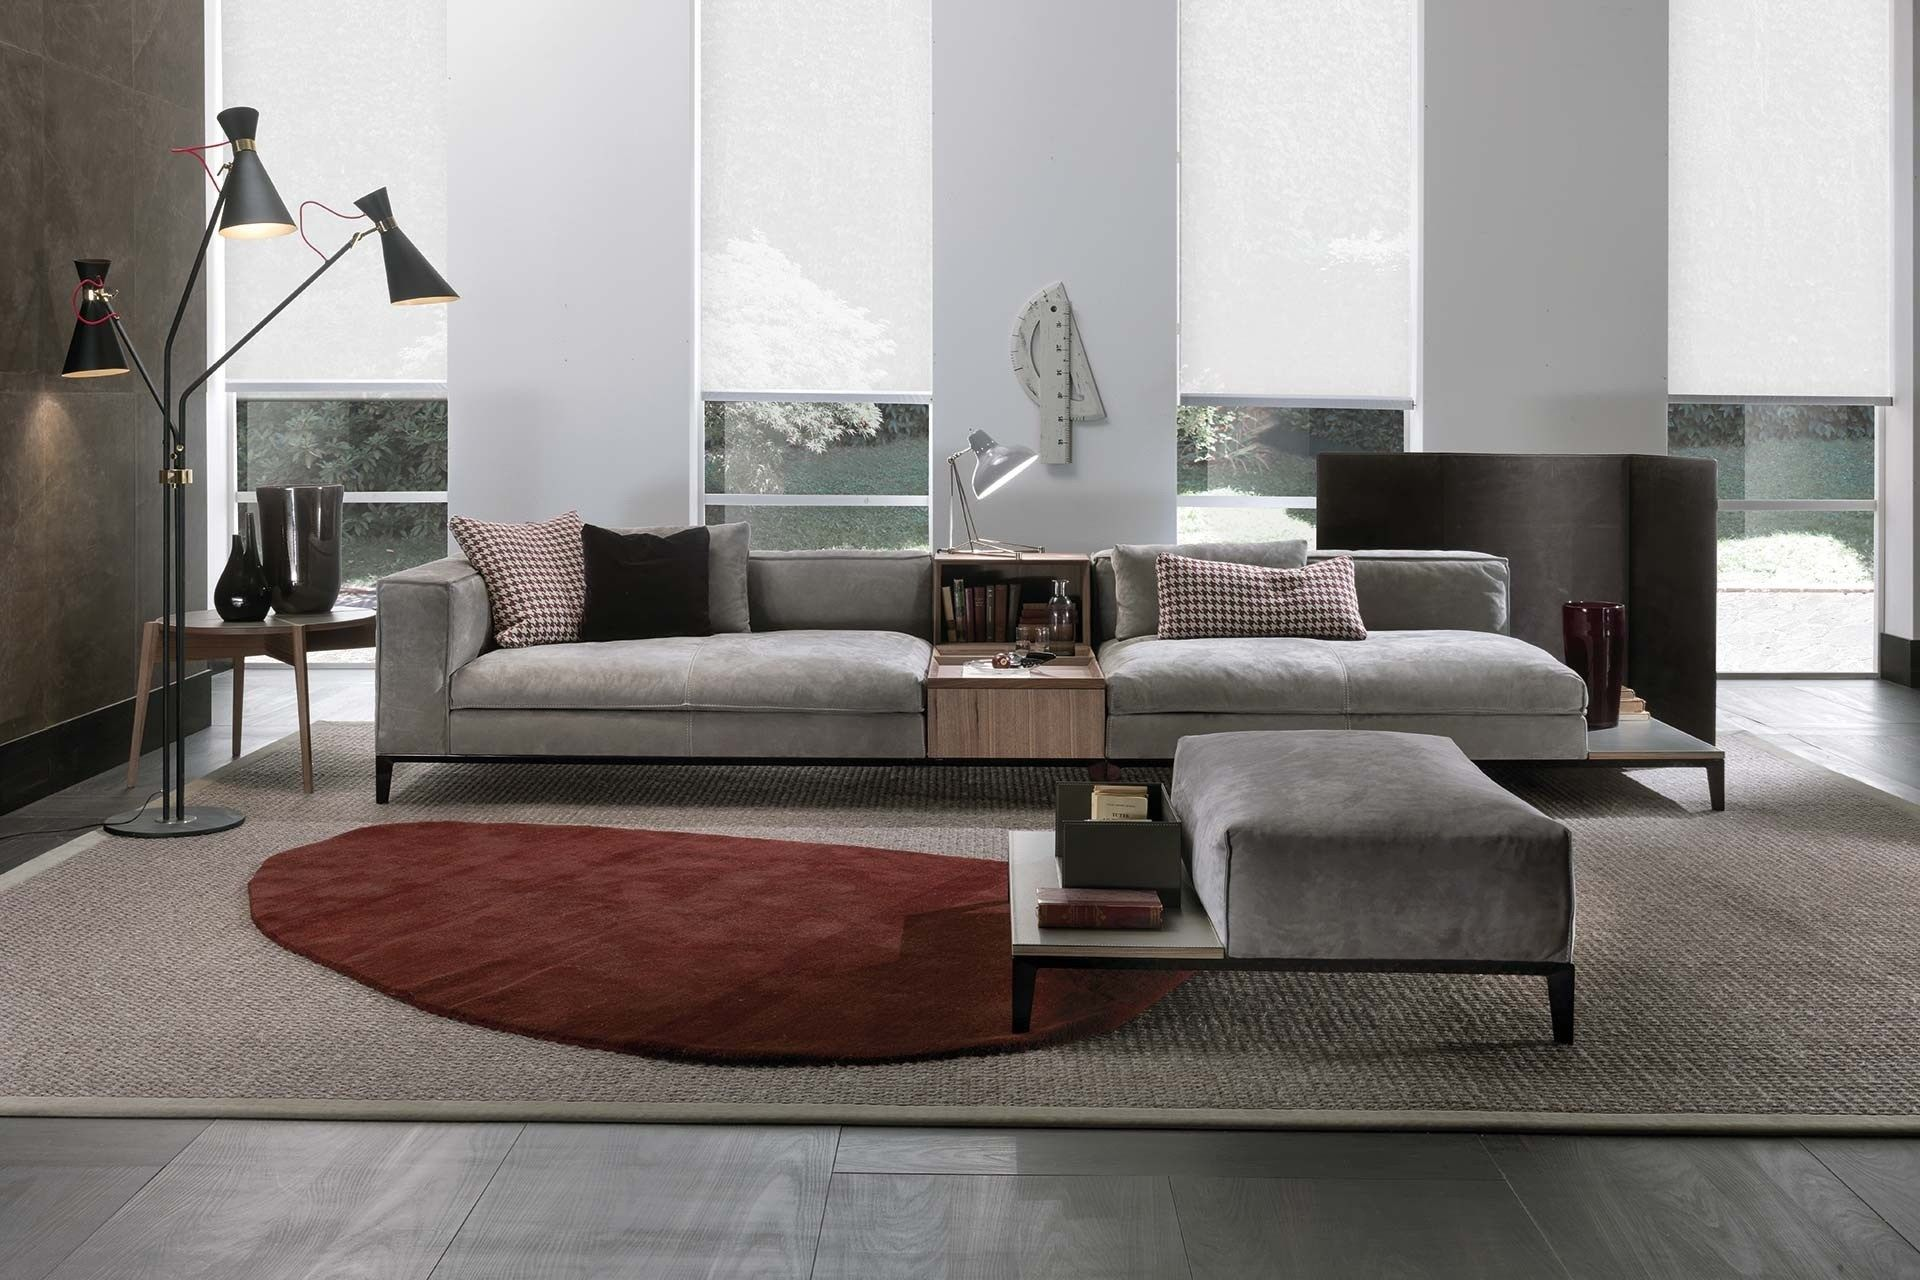 Sectional fabric sofa TAYLOR